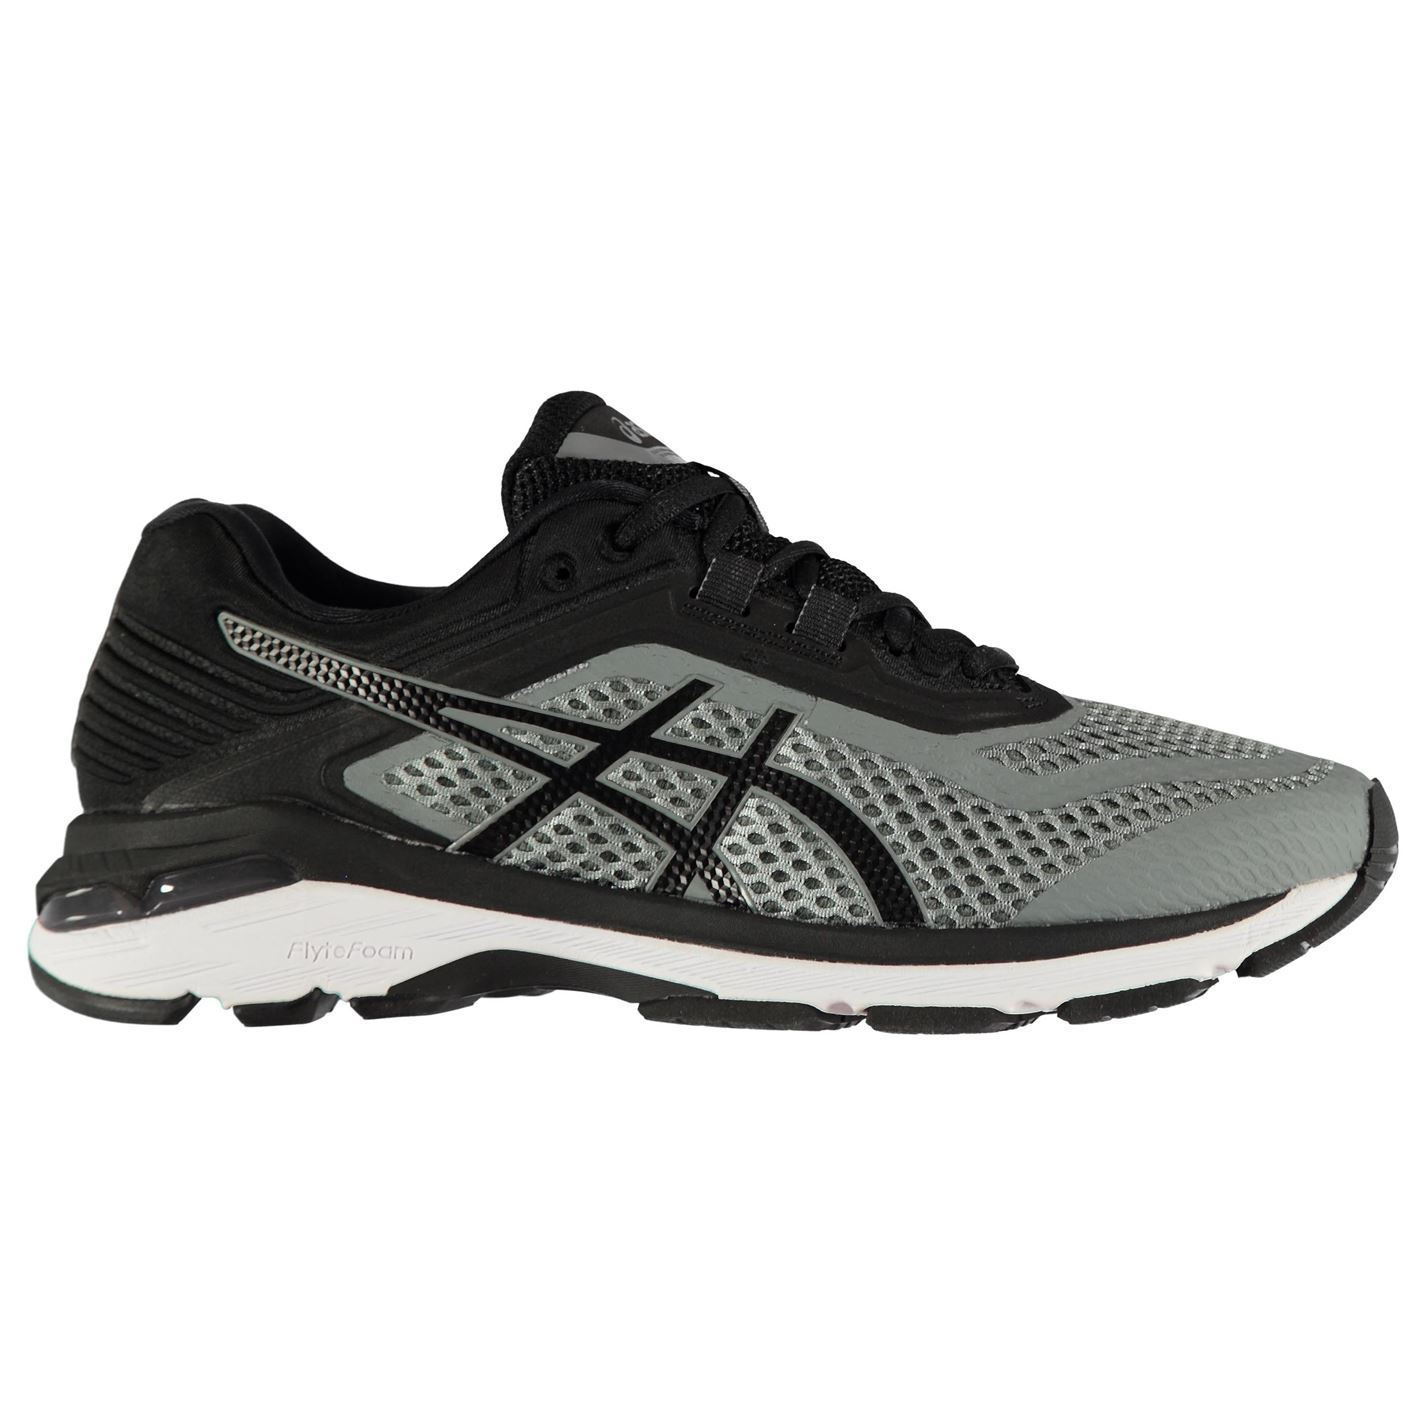 Asics Uomo GT2000 6 Running Shoes Road Lace Up Breathable Padded Ankle Collar